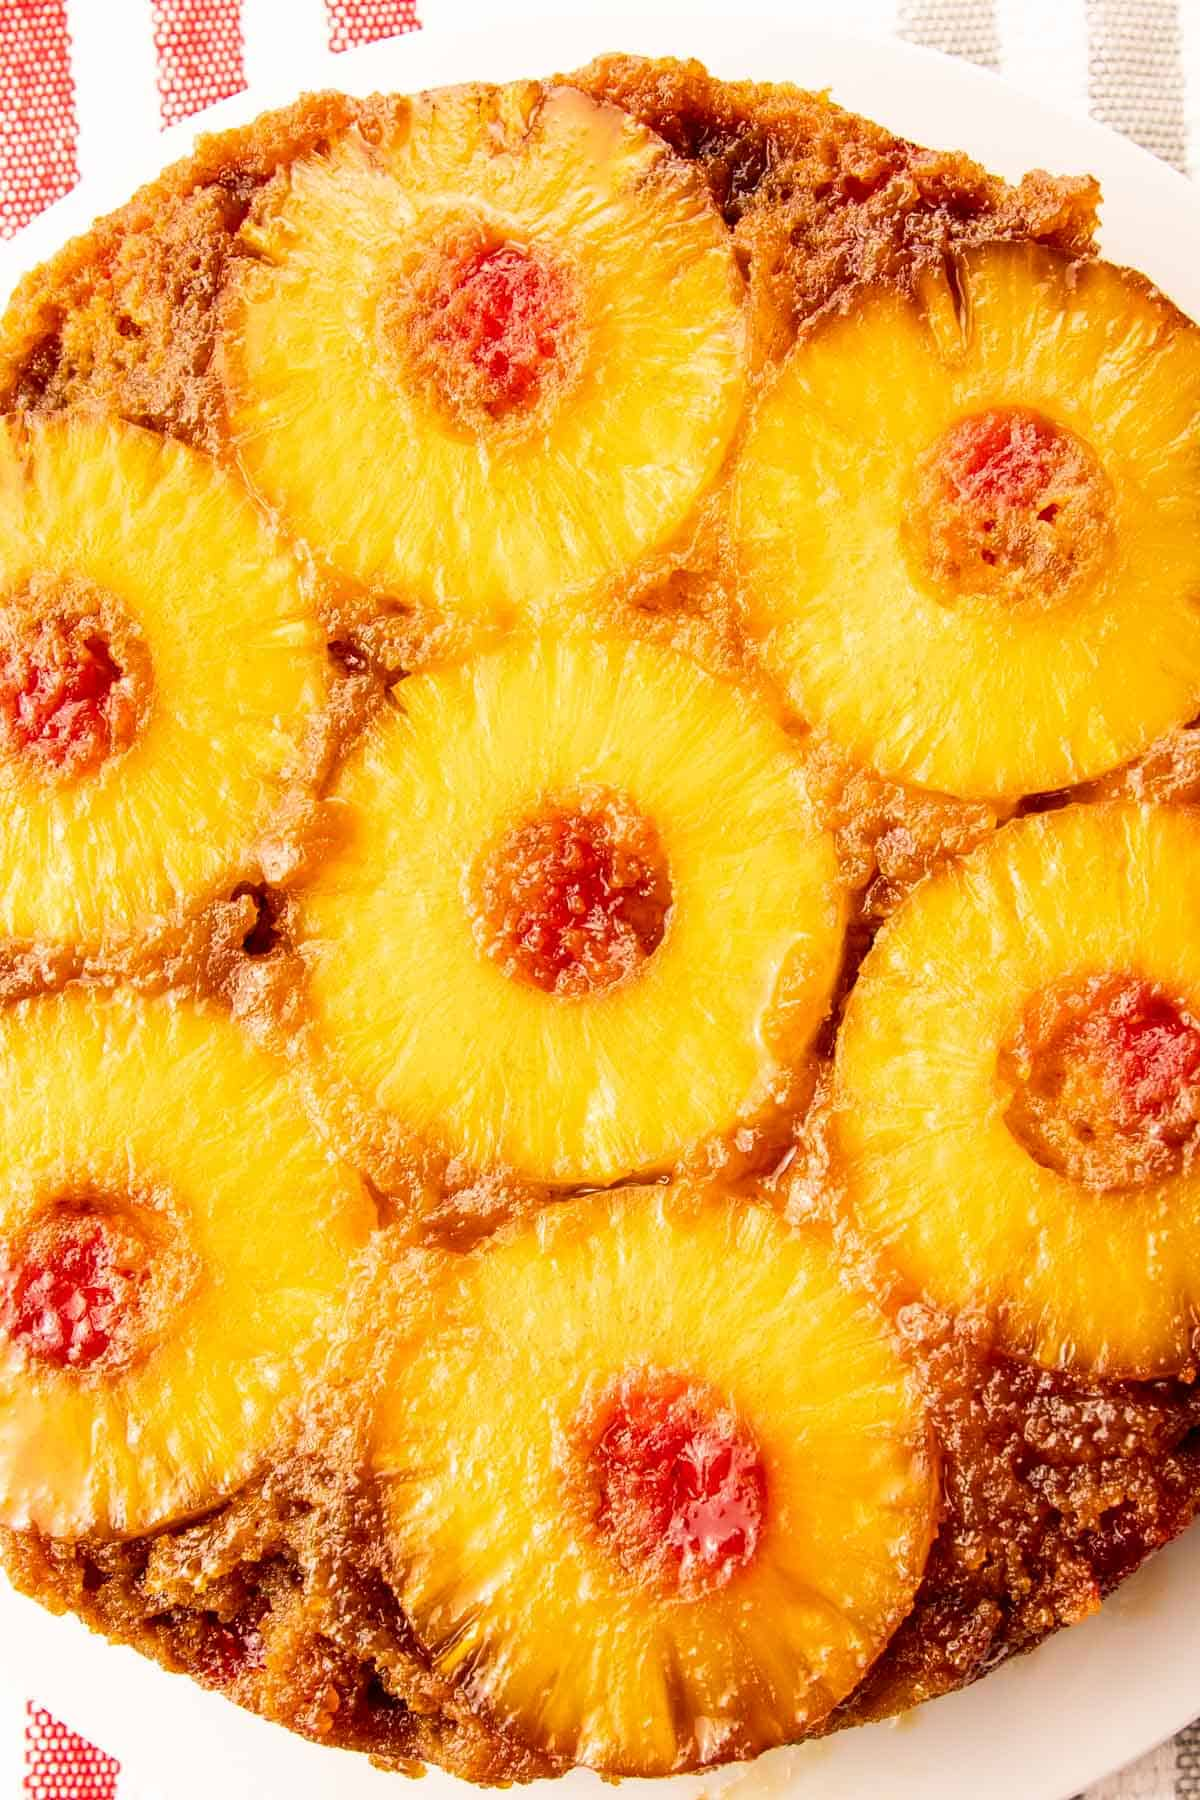 Classic pineapple upside-down cake with maraschino cherries is perfect for dessert, snacks, or with coffee. Simple but delicious. via @seasiderecipes